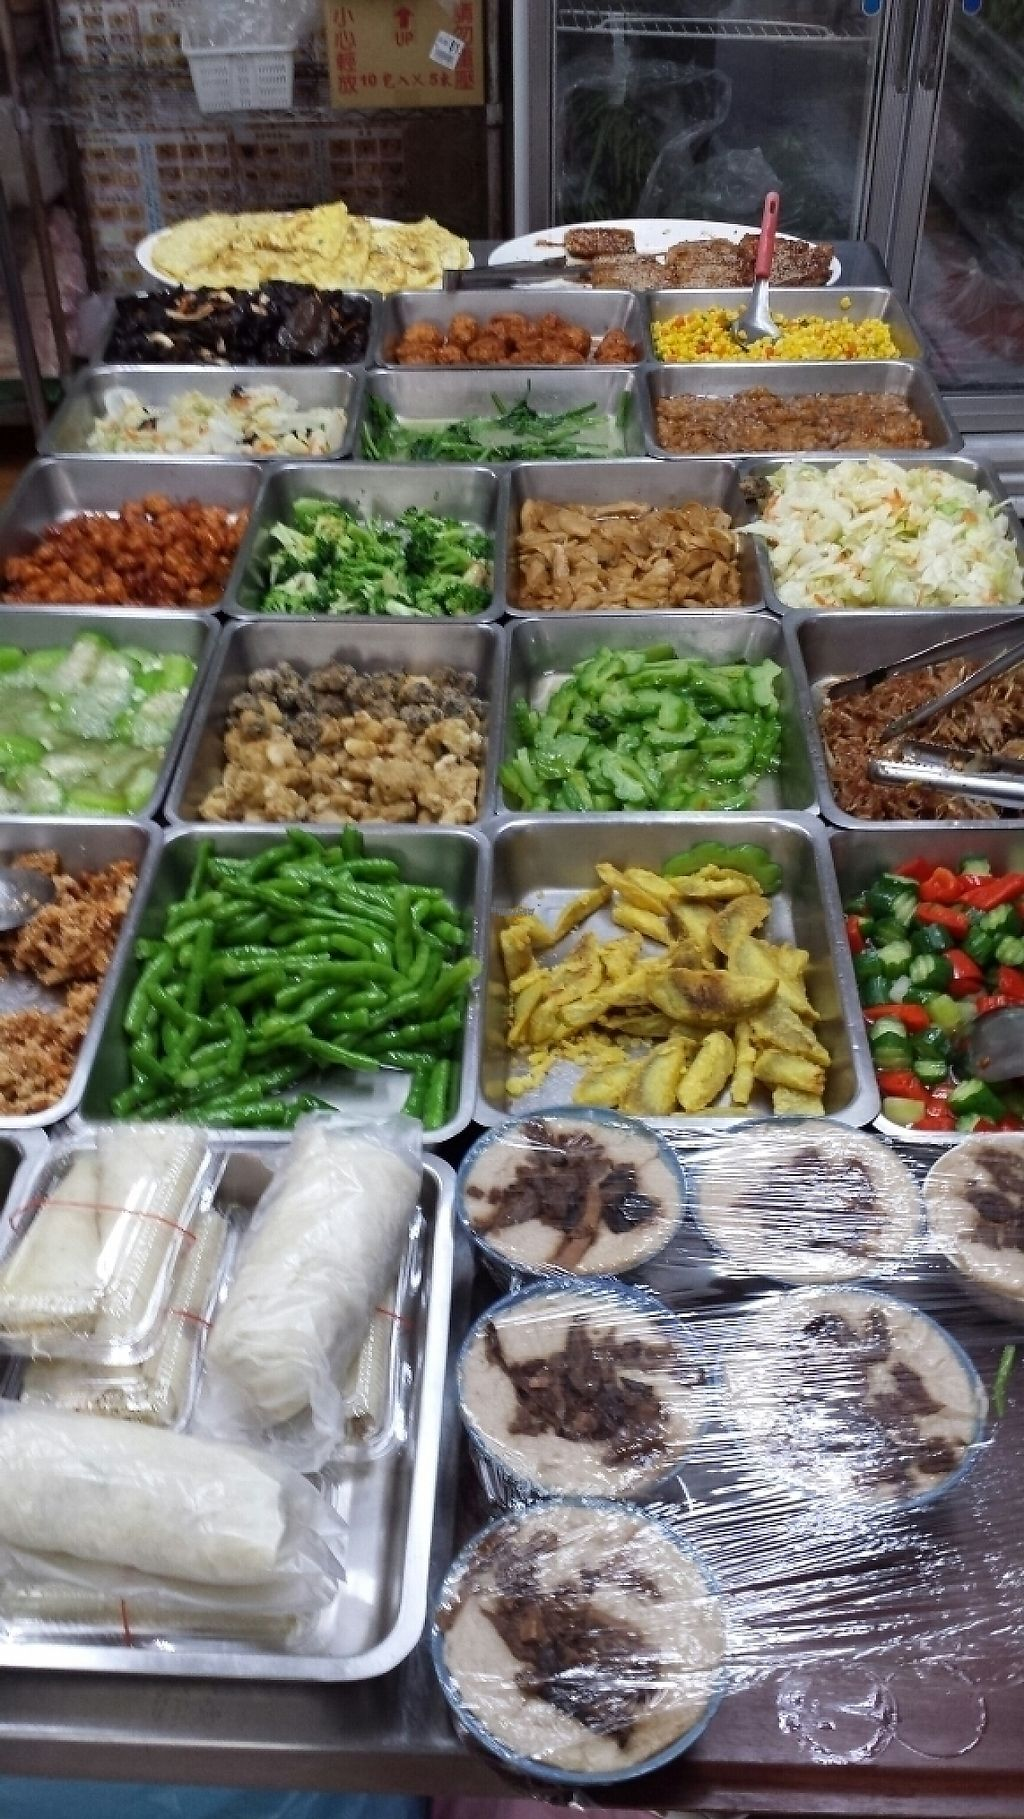 """Photo of Ming Der Vegetarian Buffet  by <a href=""""/members/profile/VanessaW"""">VanessaW</a> <br/>buffet <br/> March 26, 2017  - <a href='/contact/abuse/image/43602/241052'>Report</a>"""